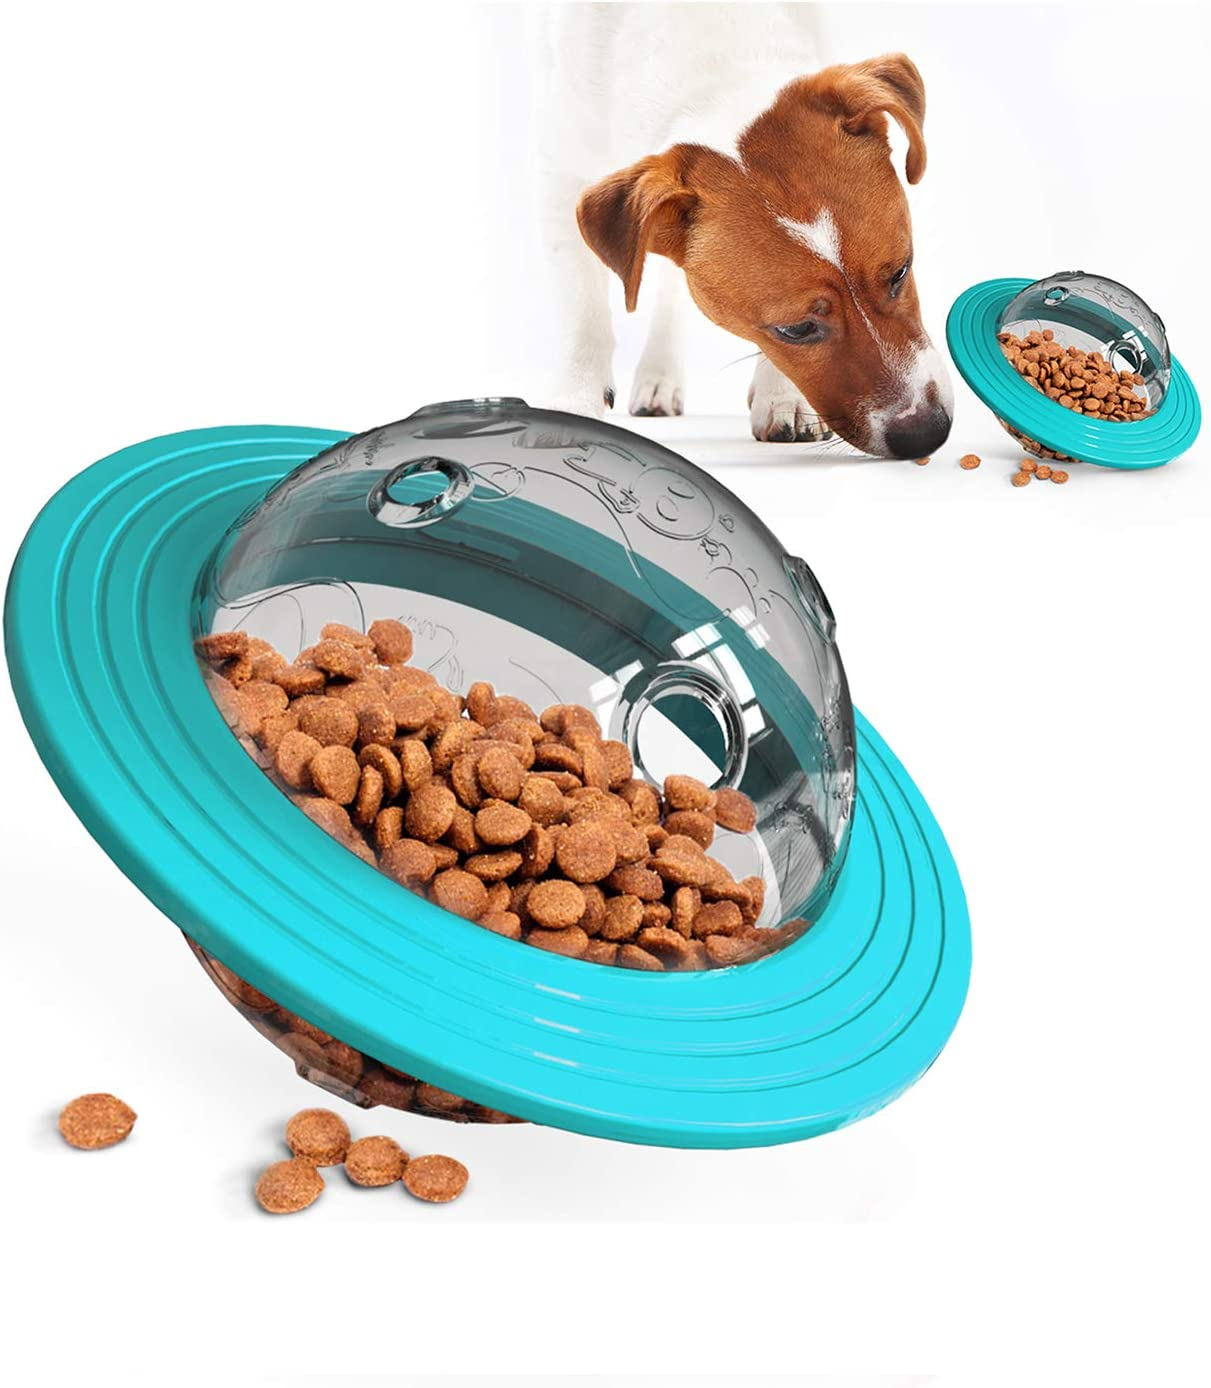 N&F Multifunctional Rolling pet Food Feeder, Flying Saucer Educational Toys, wear-Resistant Dog Supplies